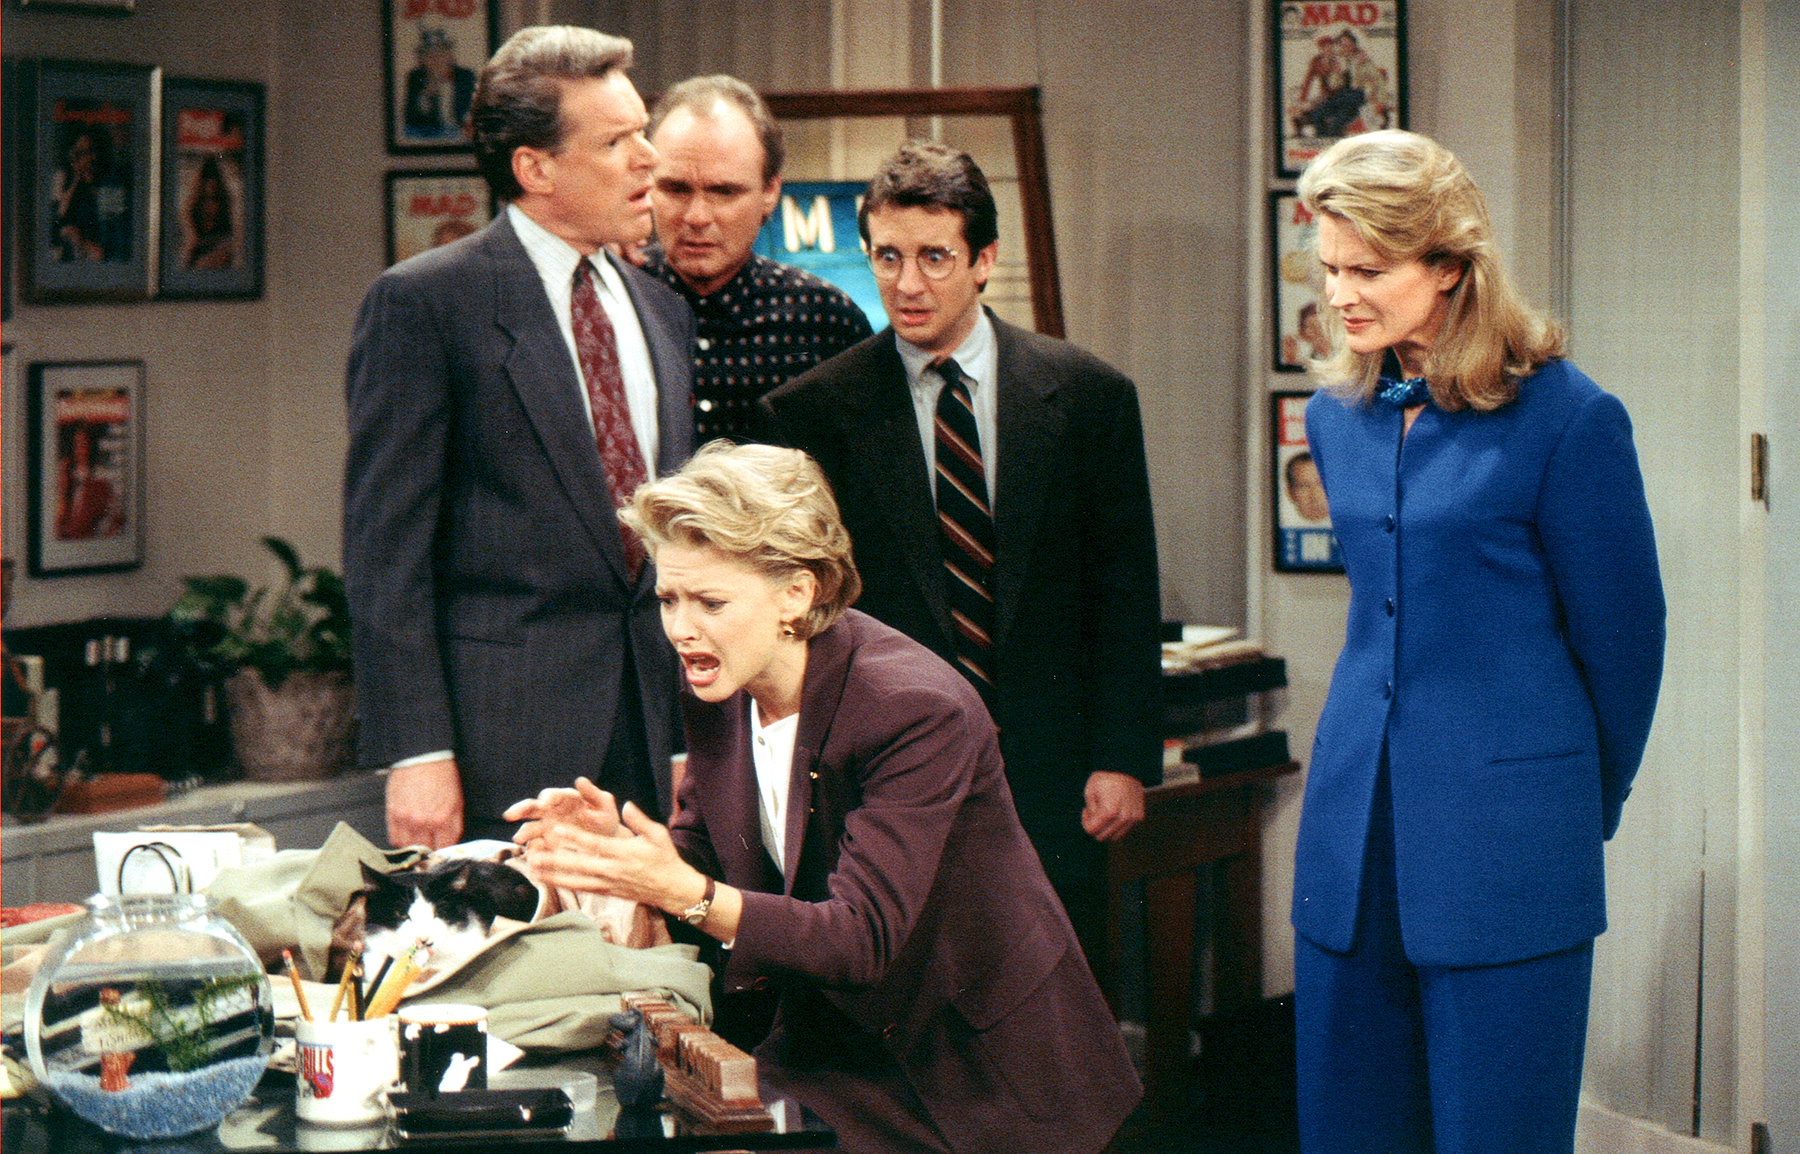 Candice Bergen Returning To Star In New 'Murphy Brown' Revival On CBS